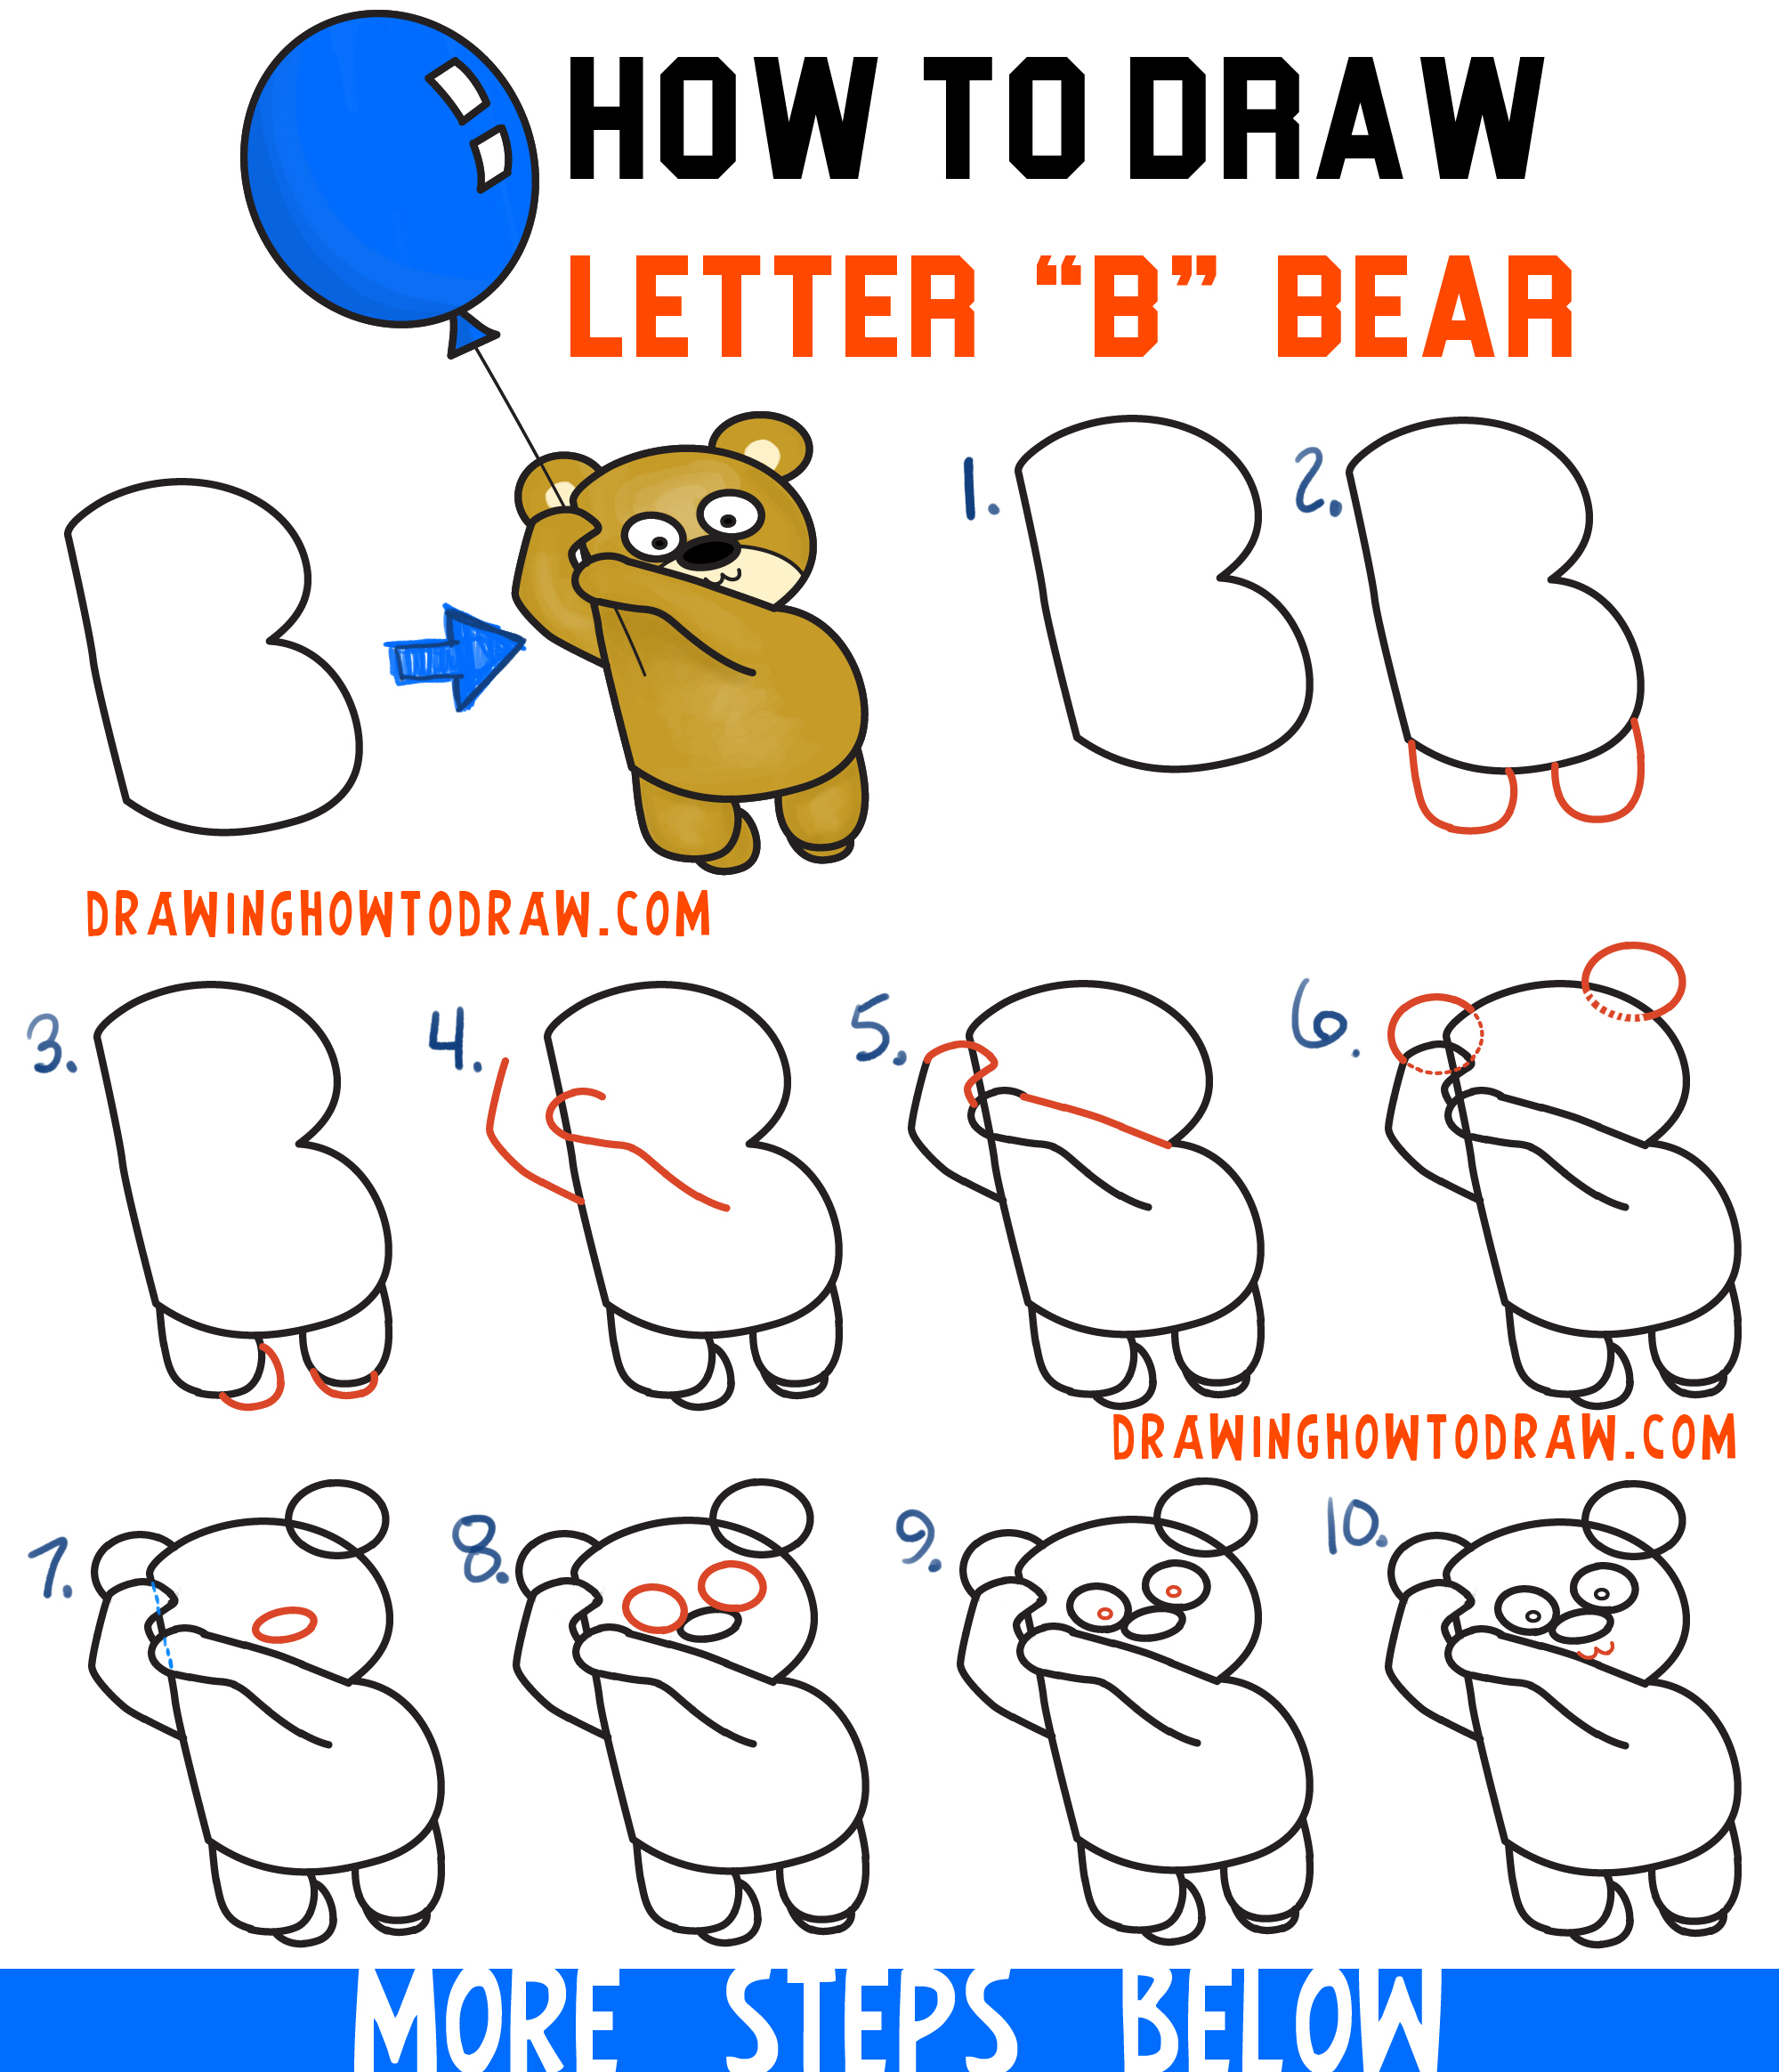 How to draw a cartoon bear holding a balloon floating up for How to make cartoon drawings step by step